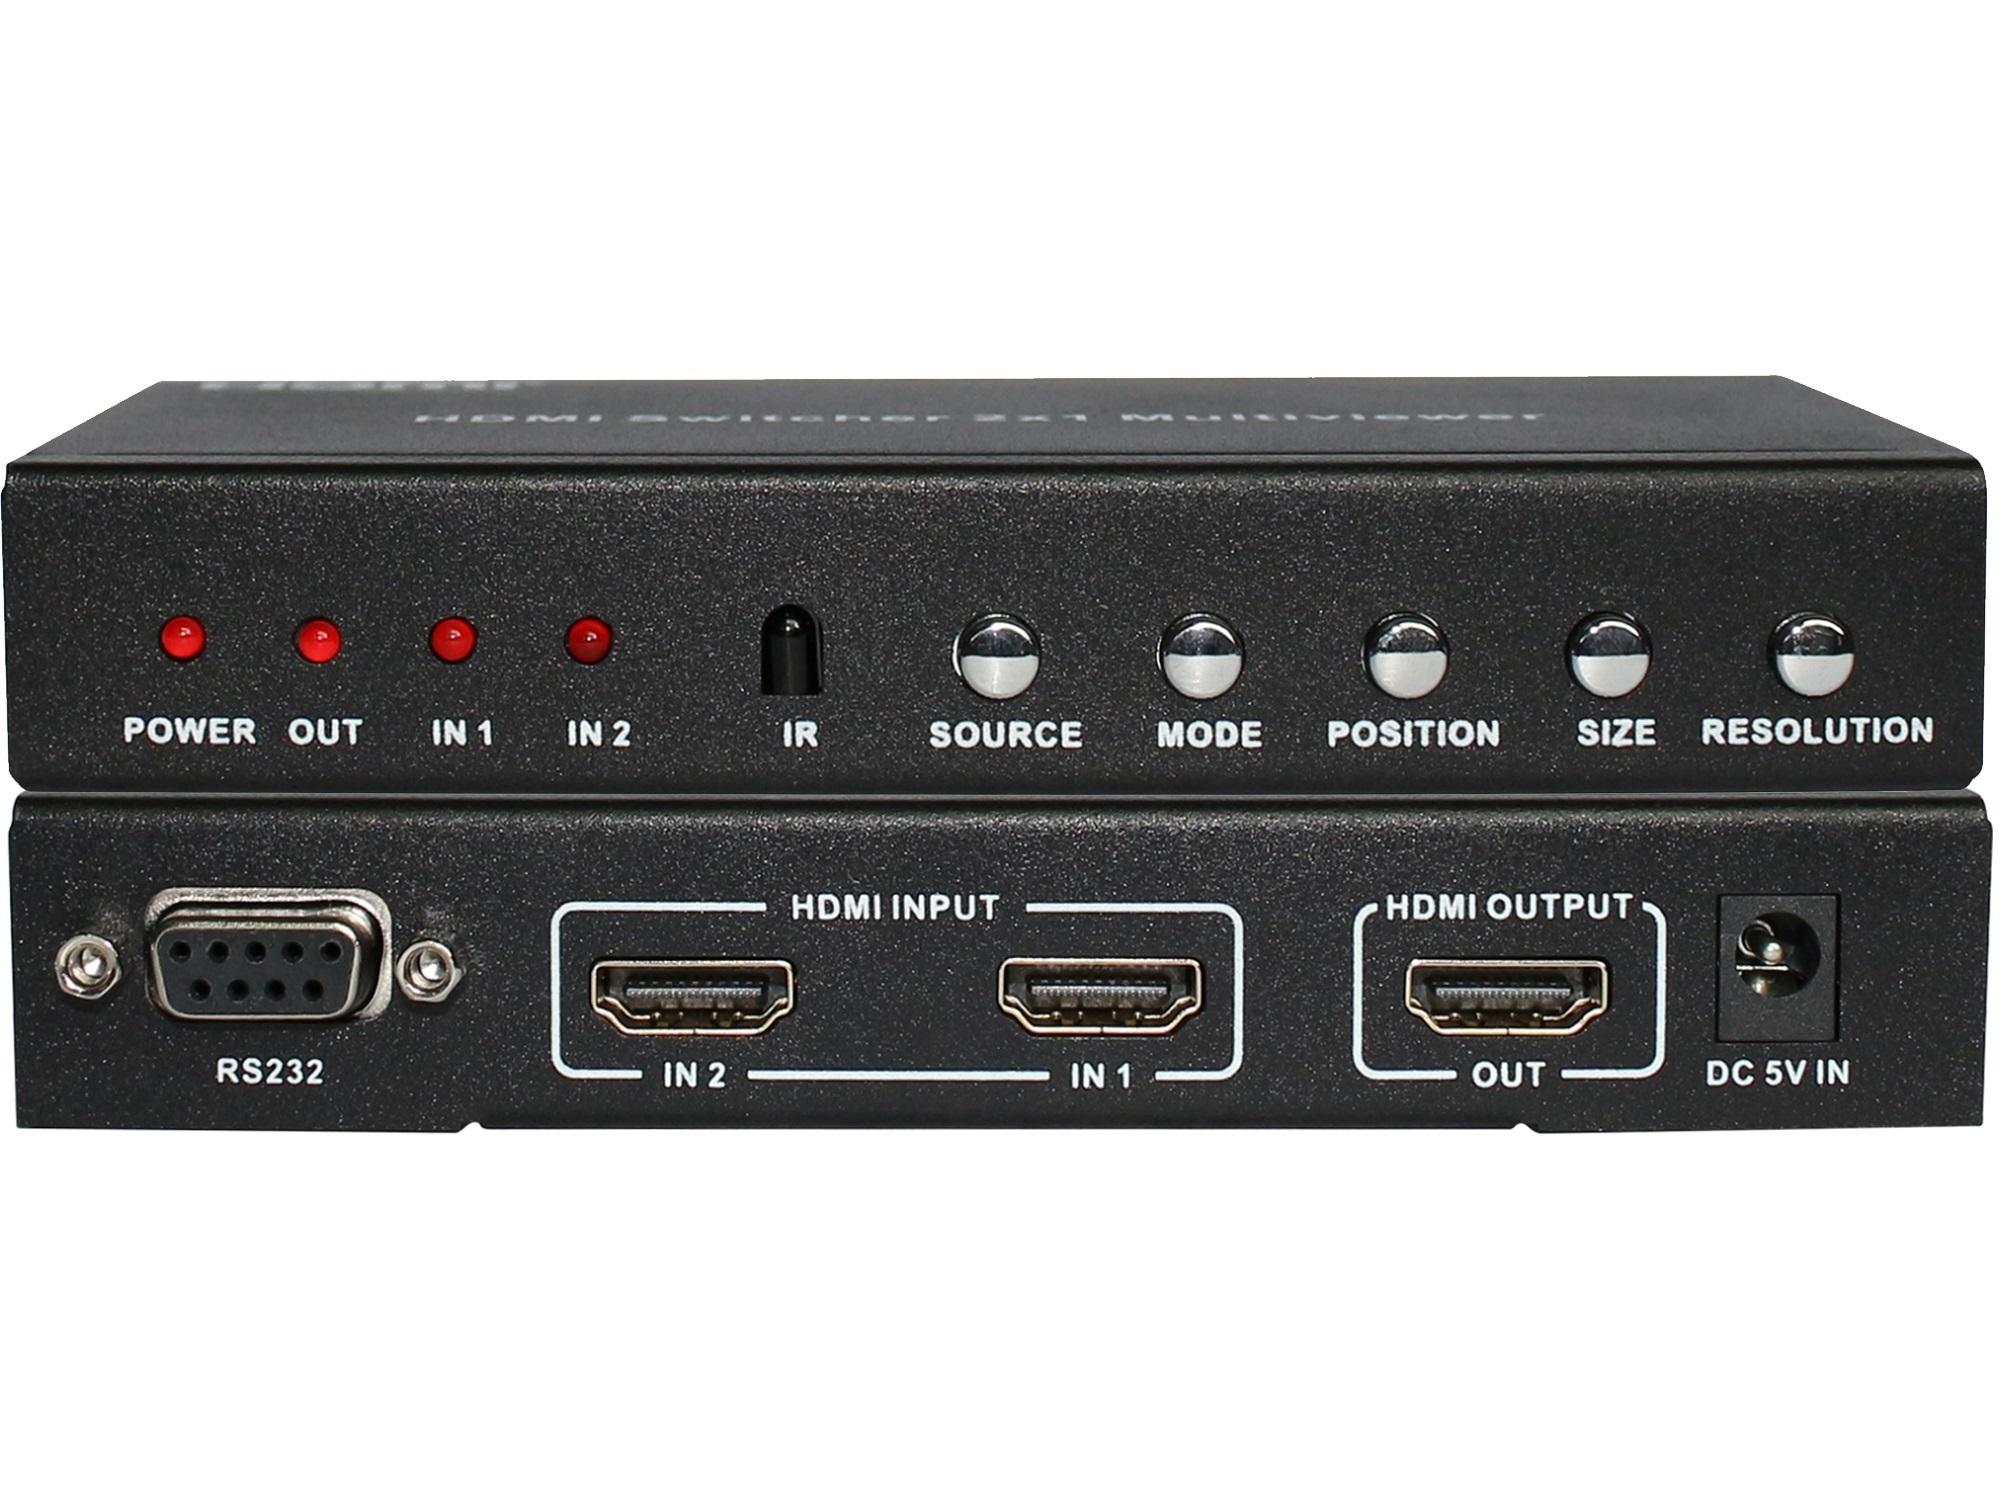 Ultra HD HDMI Splitter 2x1 Multi-Viewer with PIP High Definition resolution 10W